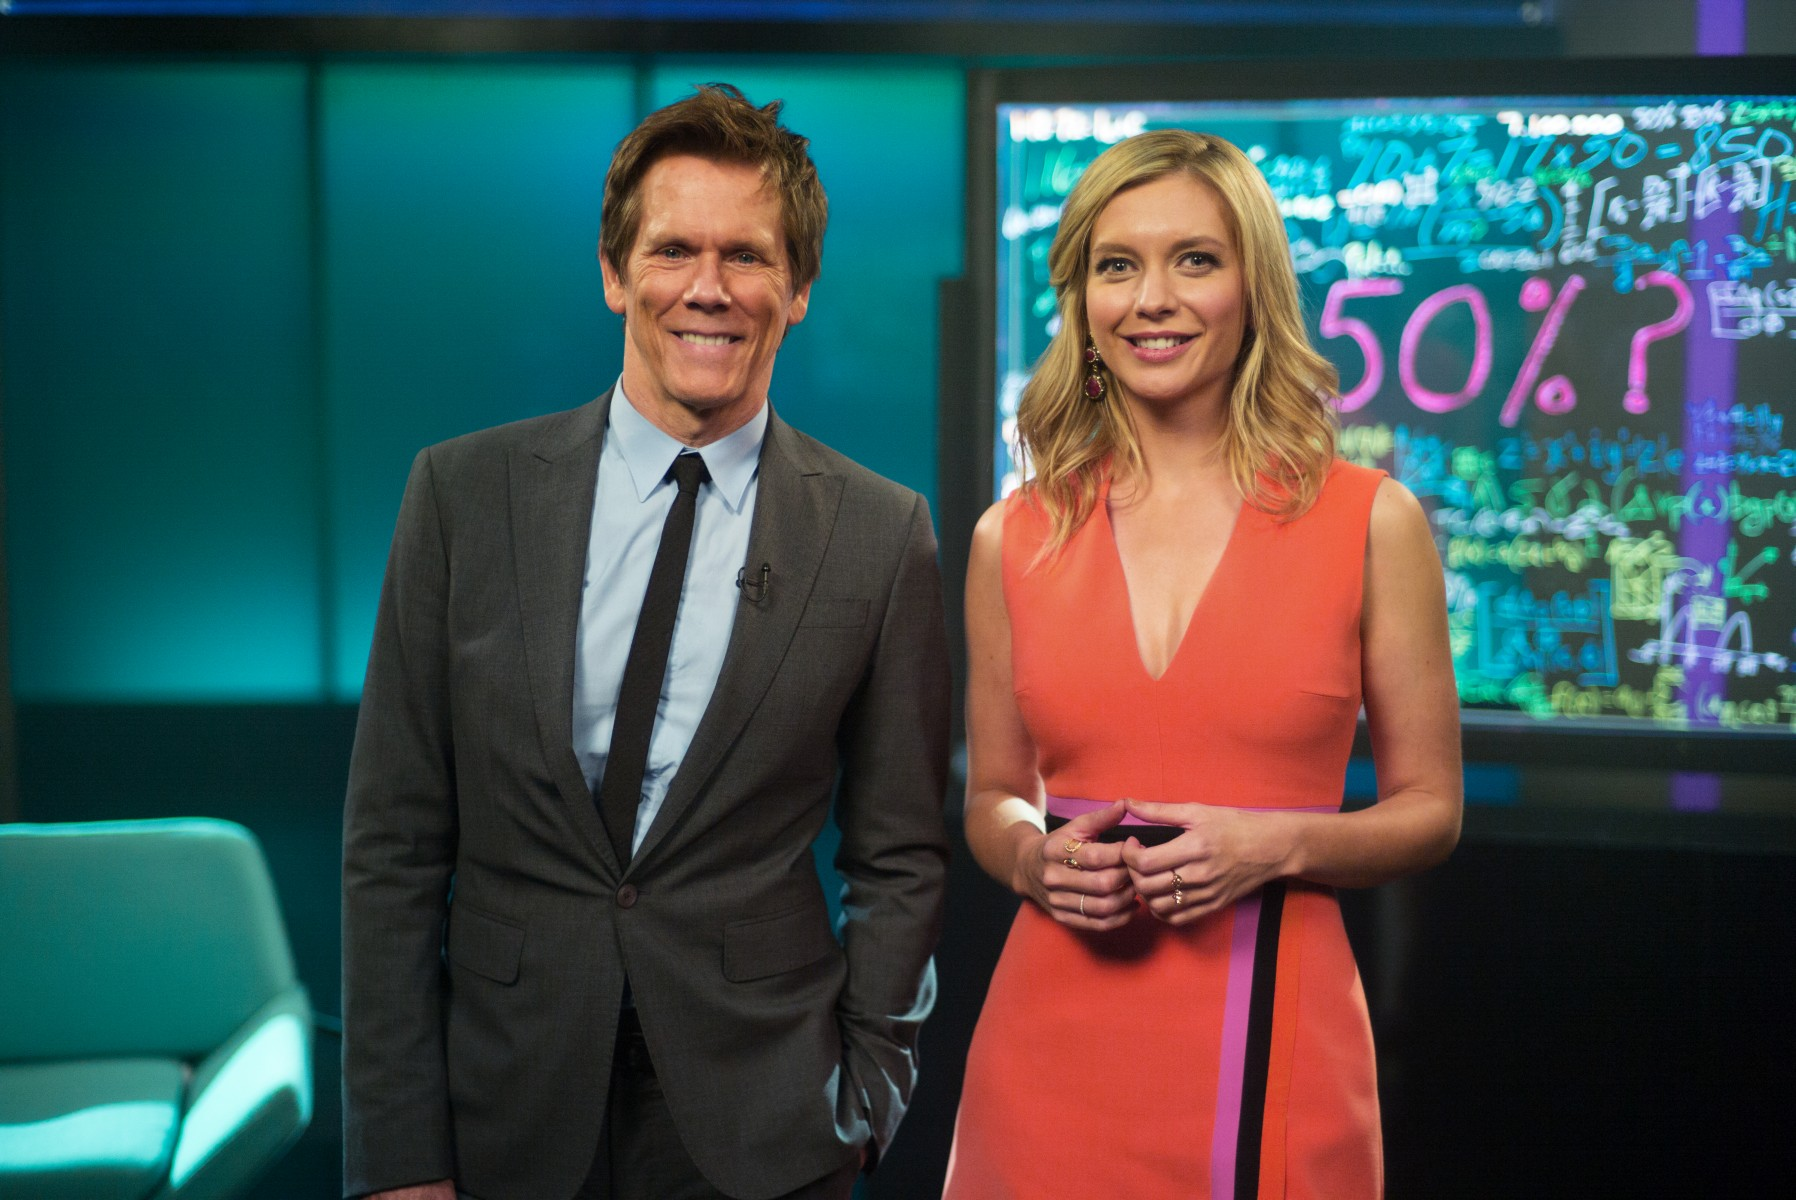 Kevin Bacon and Rachel Riley